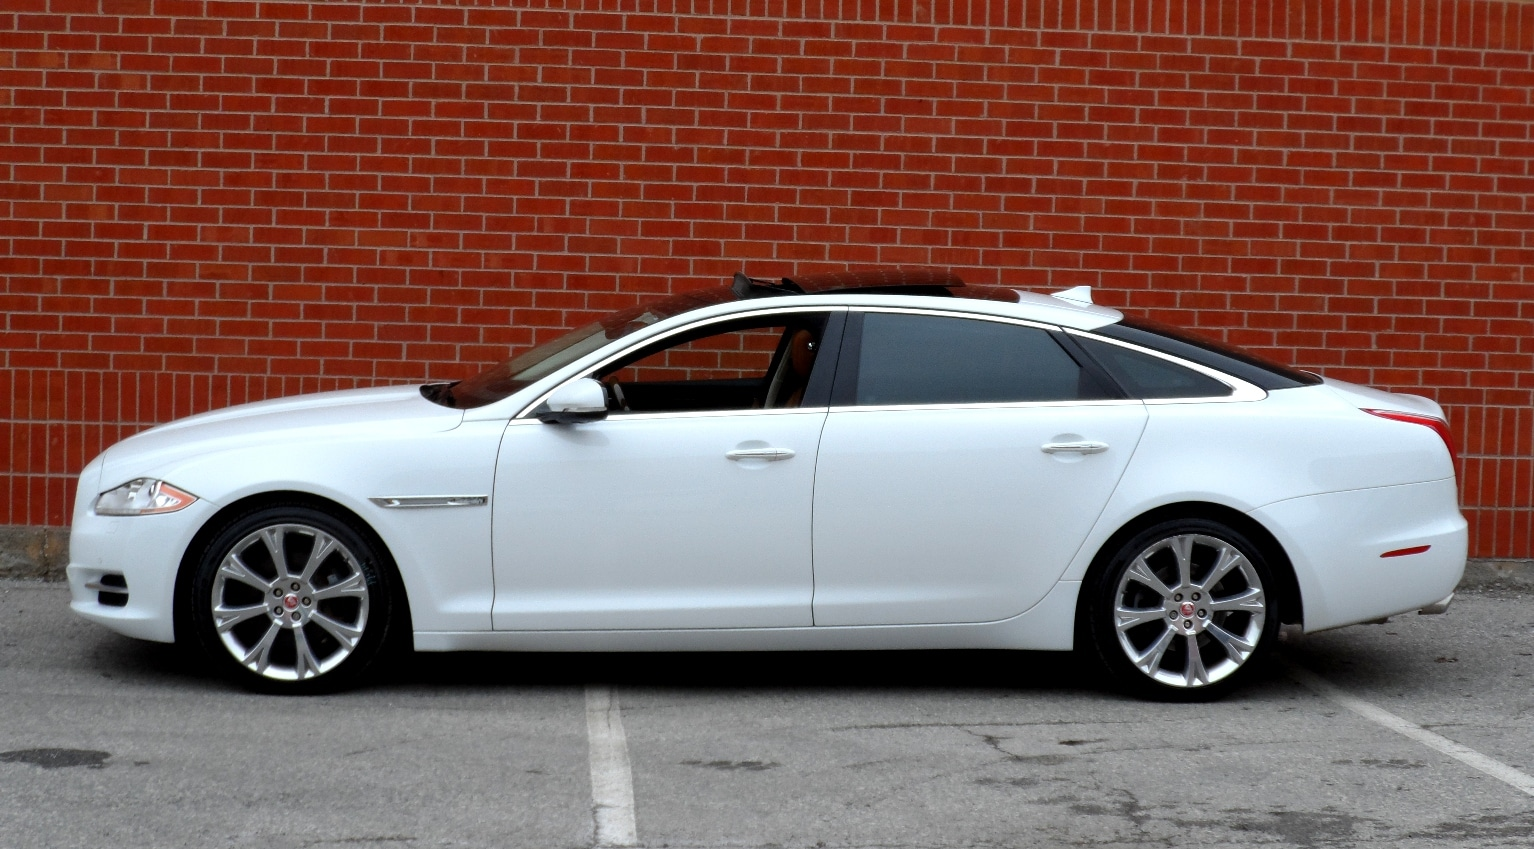 ... 2014 Jaguar XJ XJL 3.0L Portfolio, Adaptive Cruise, Massage Seat Sedan  ...